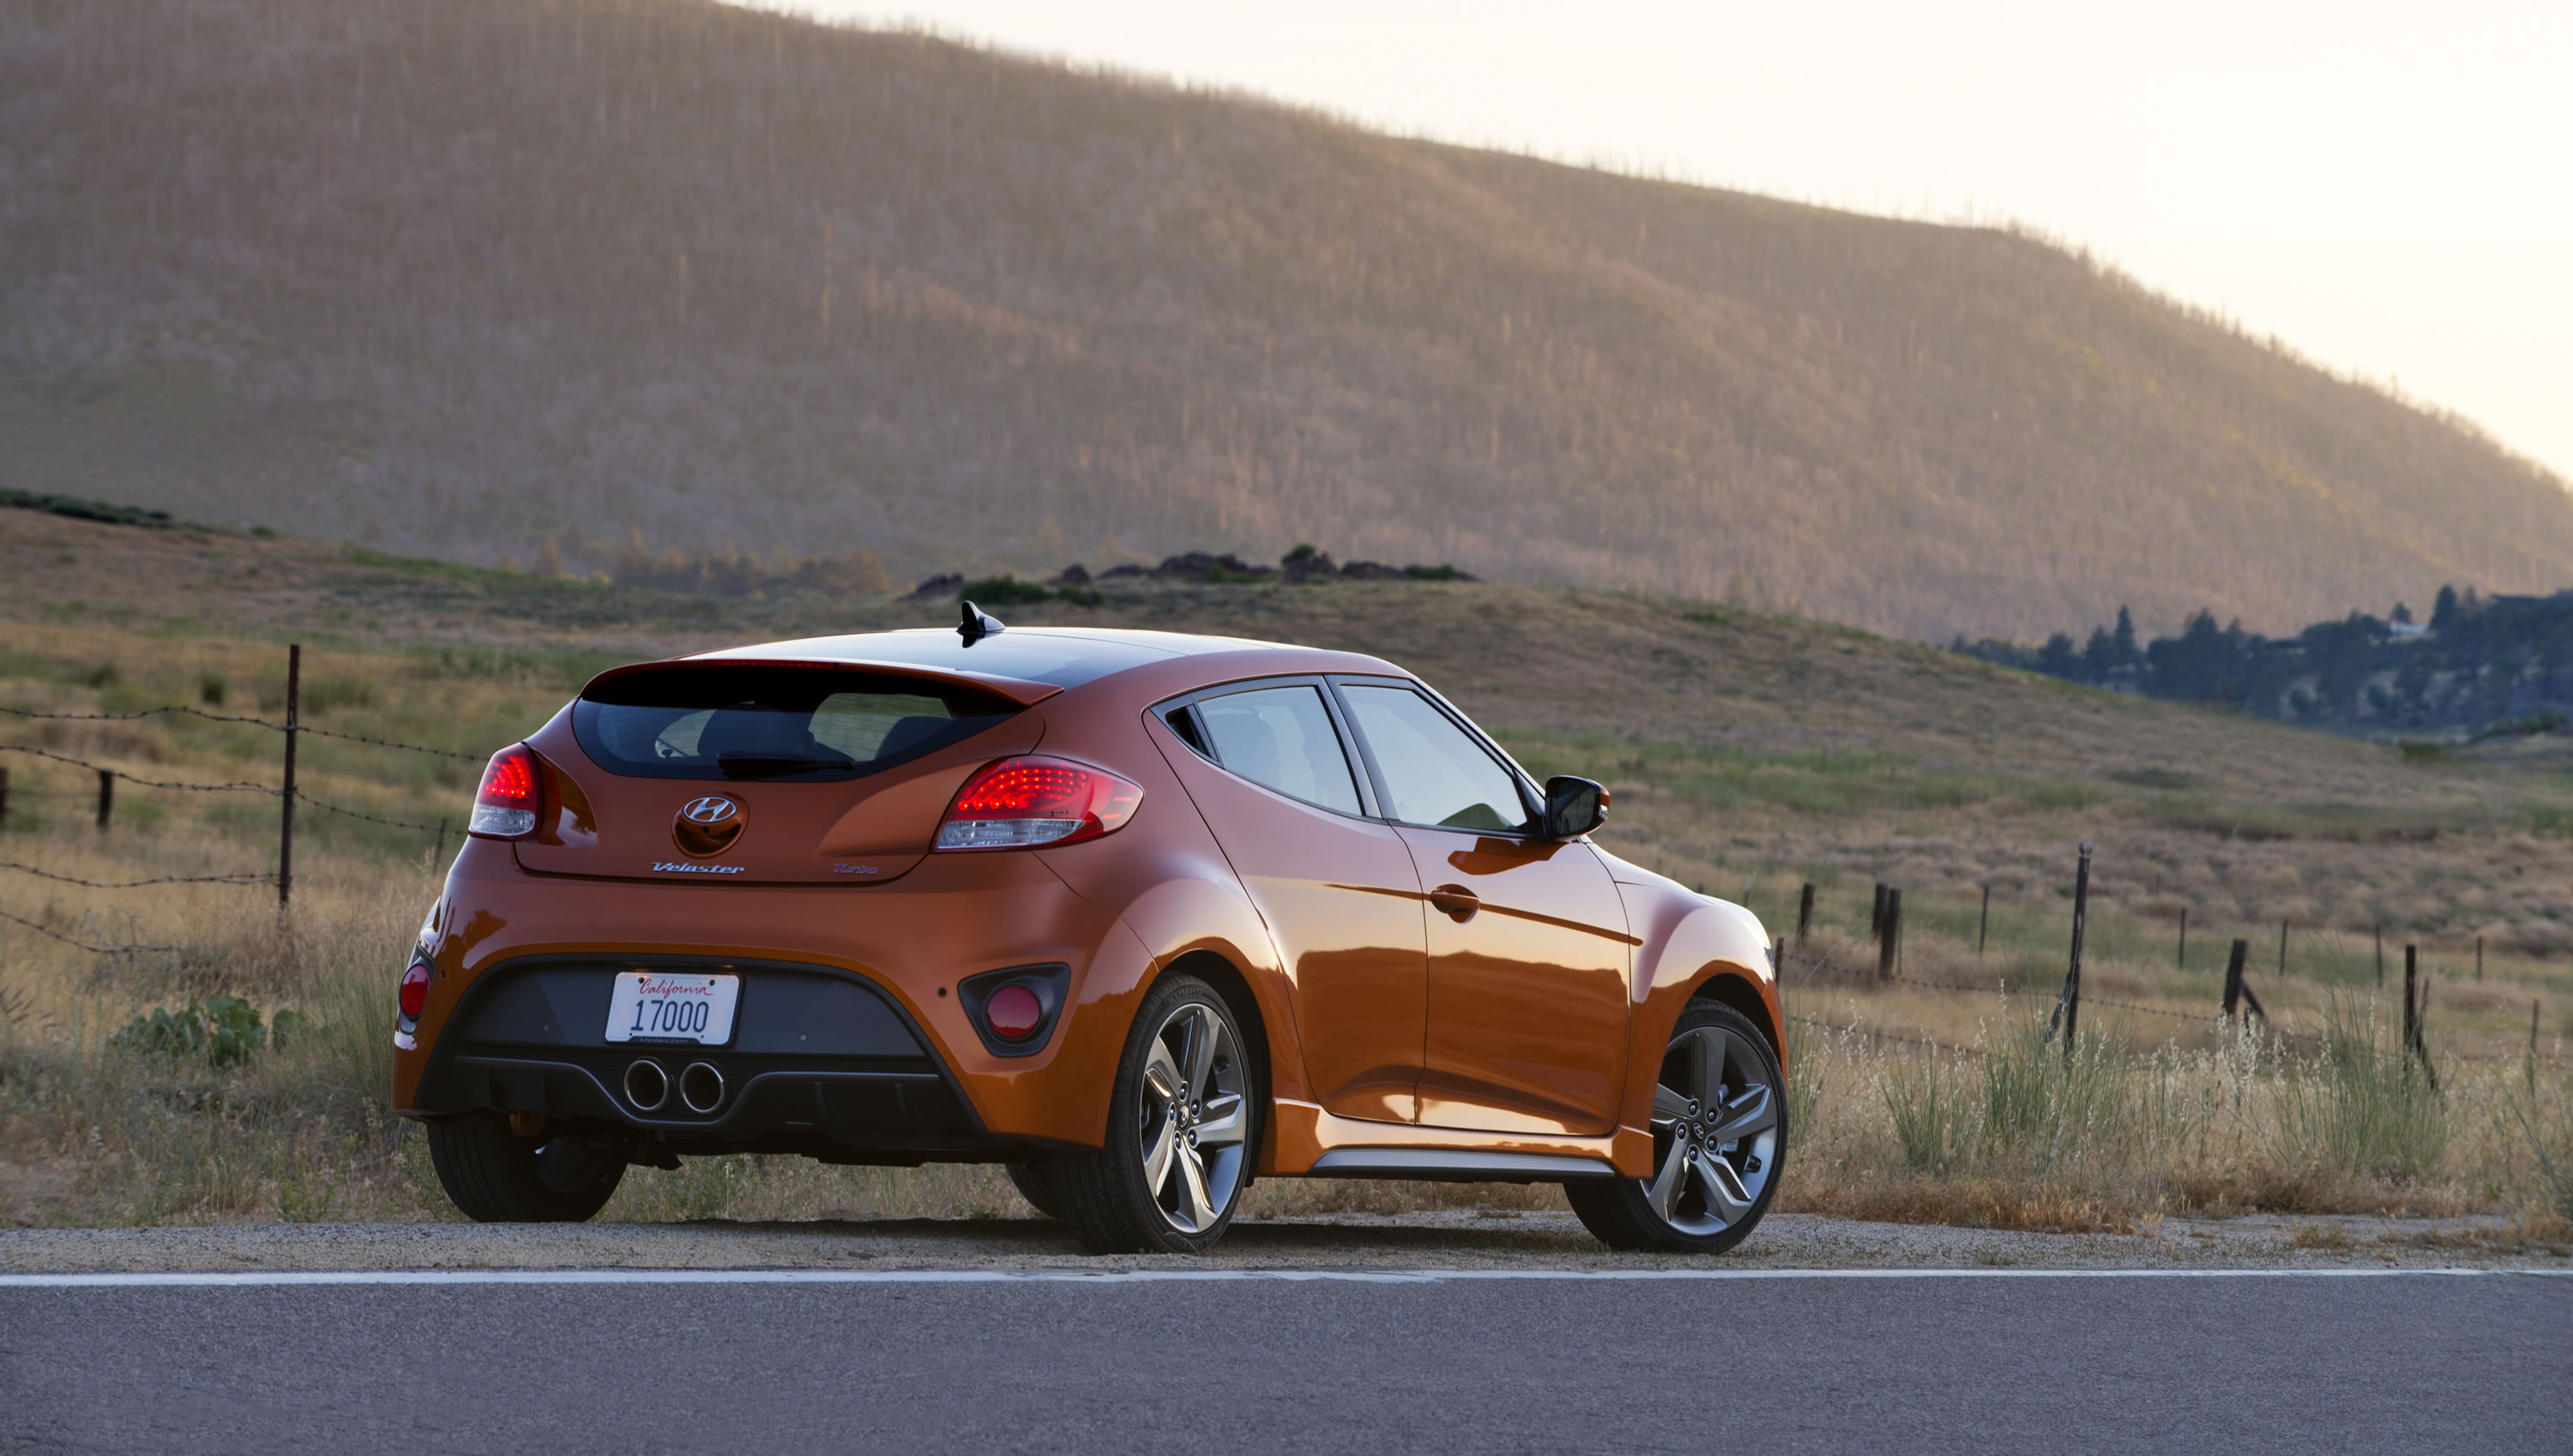 2014 hyundai veloster turbo photos specs and review rs. Black Bedroom Furniture Sets. Home Design Ideas